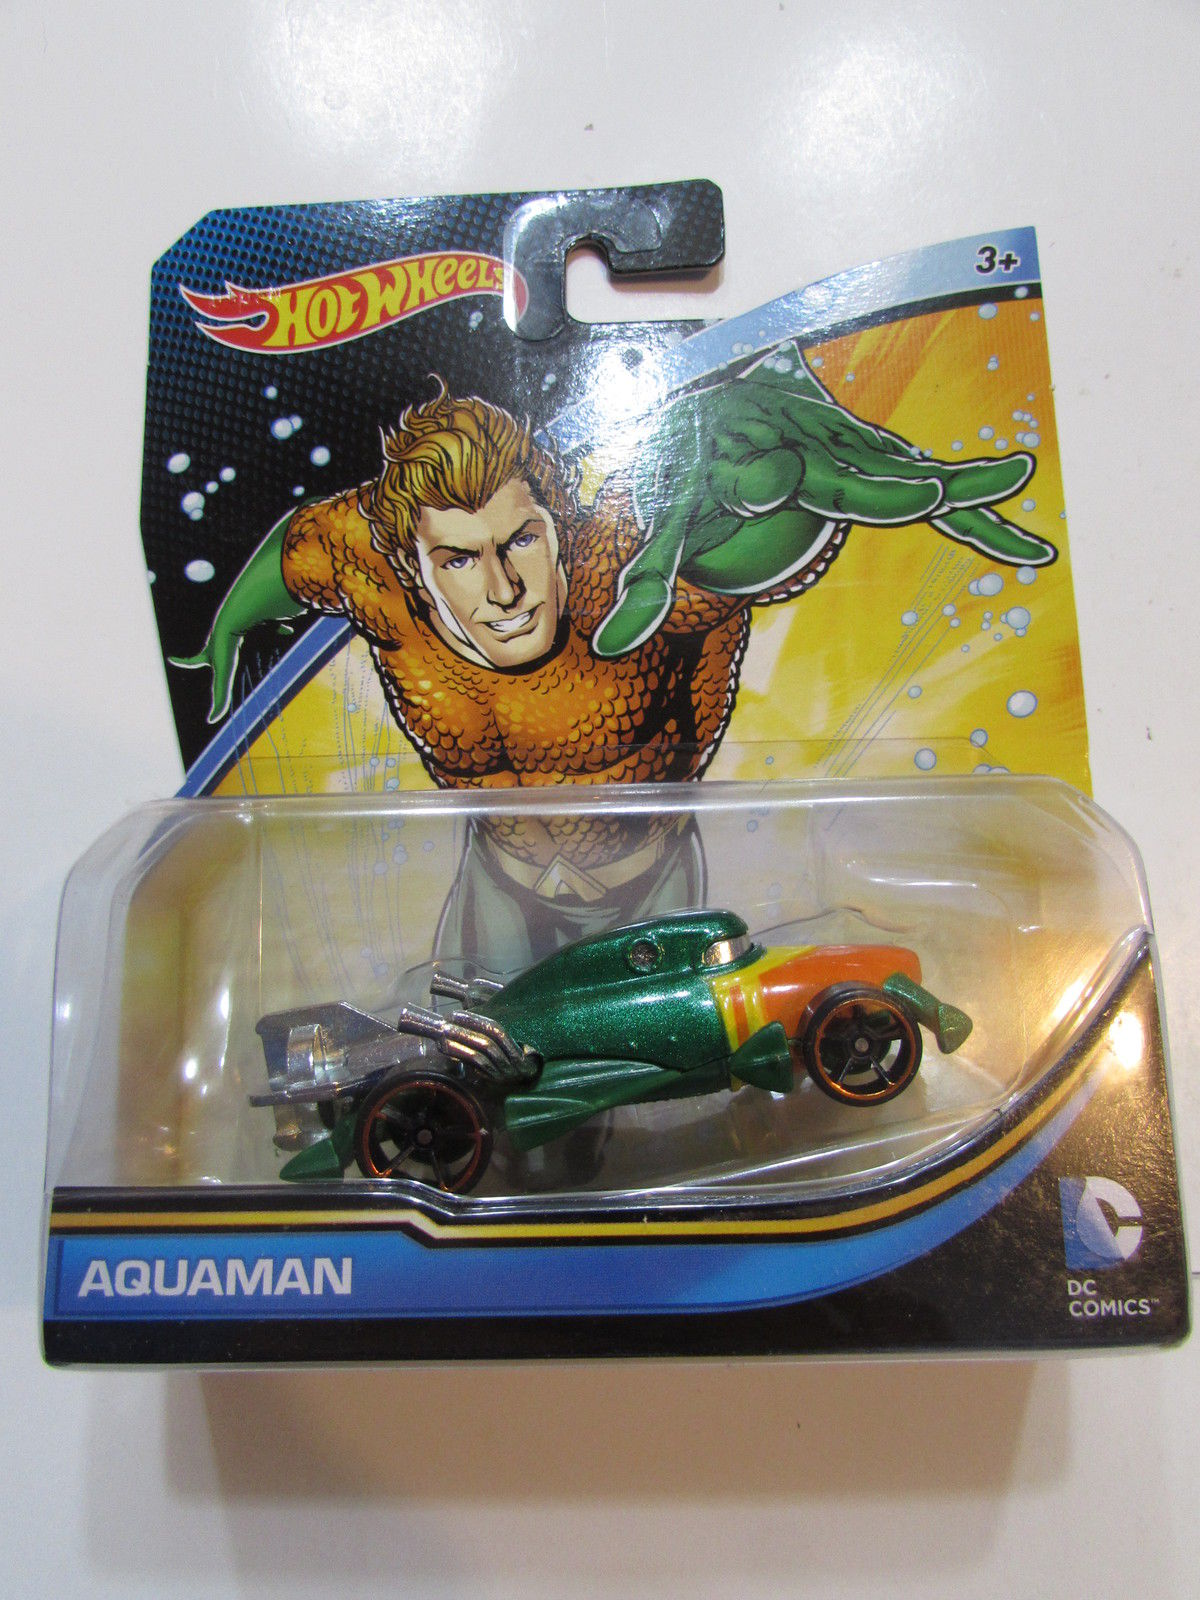 HOT WHEELS 2014 DC COMICS AQUAMAN